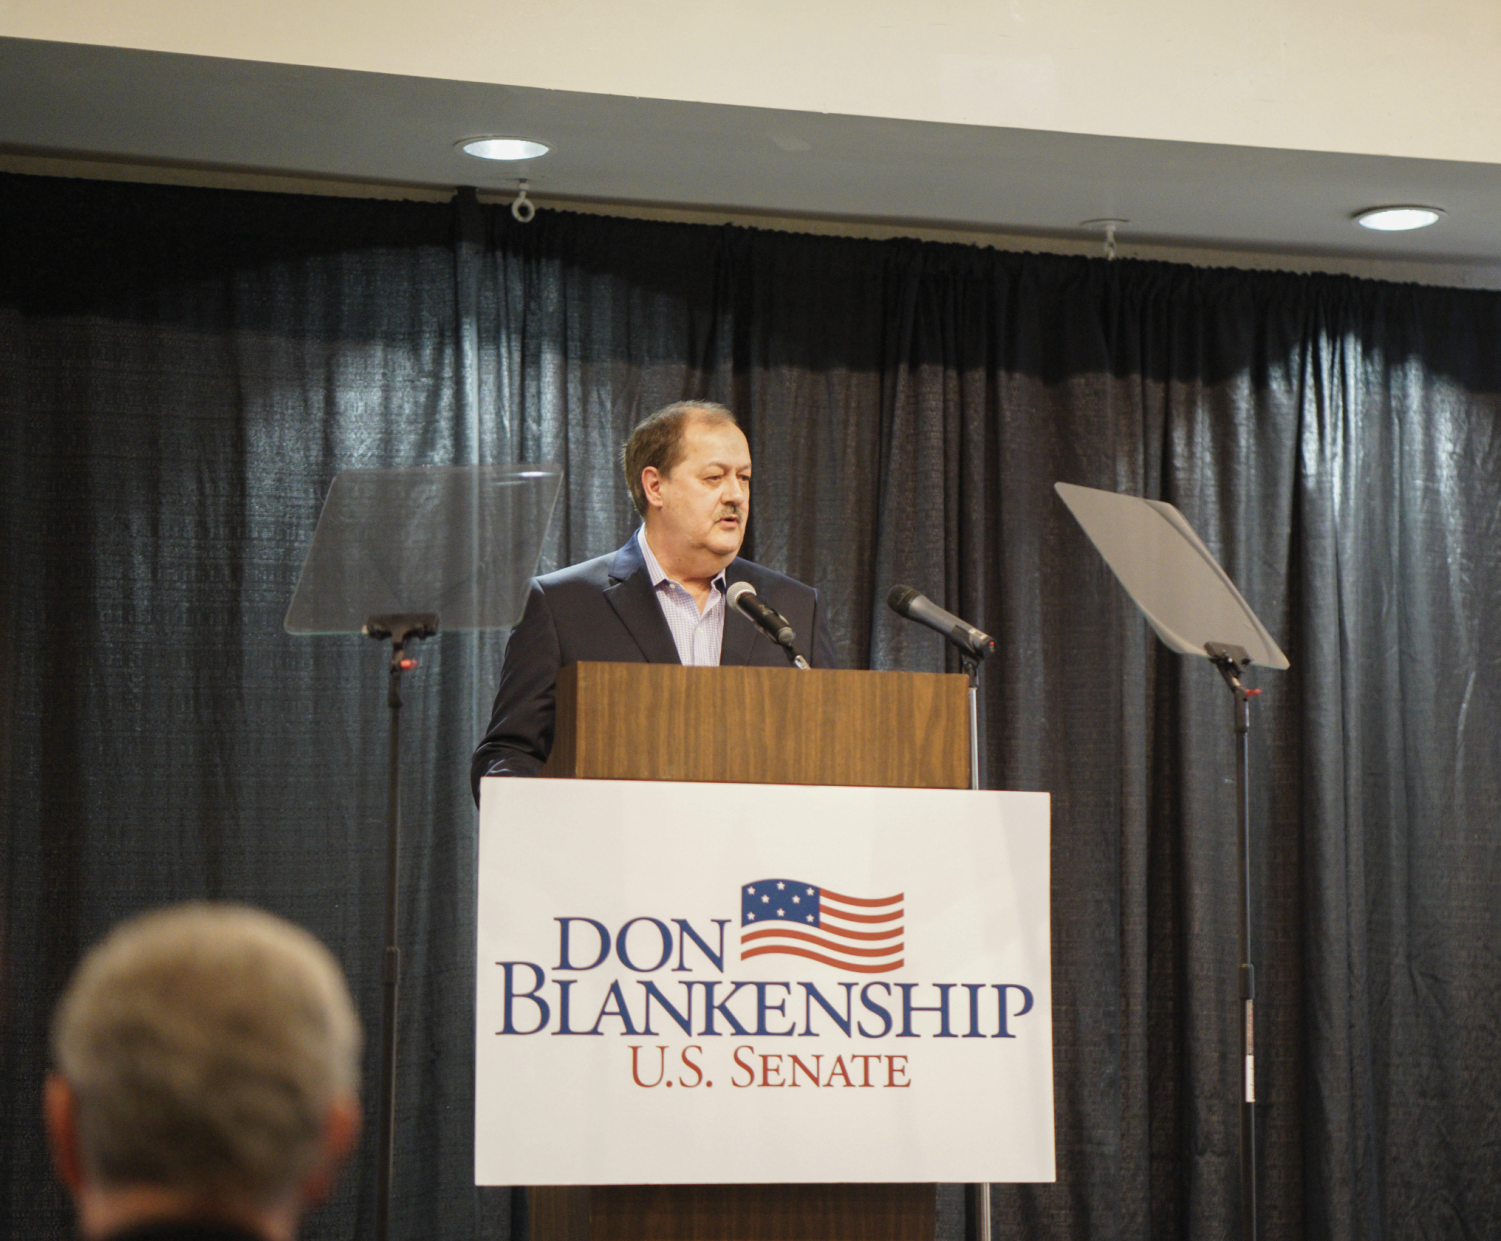 Controversial senatorial candidate Don Blankenship, laying out his agenda.